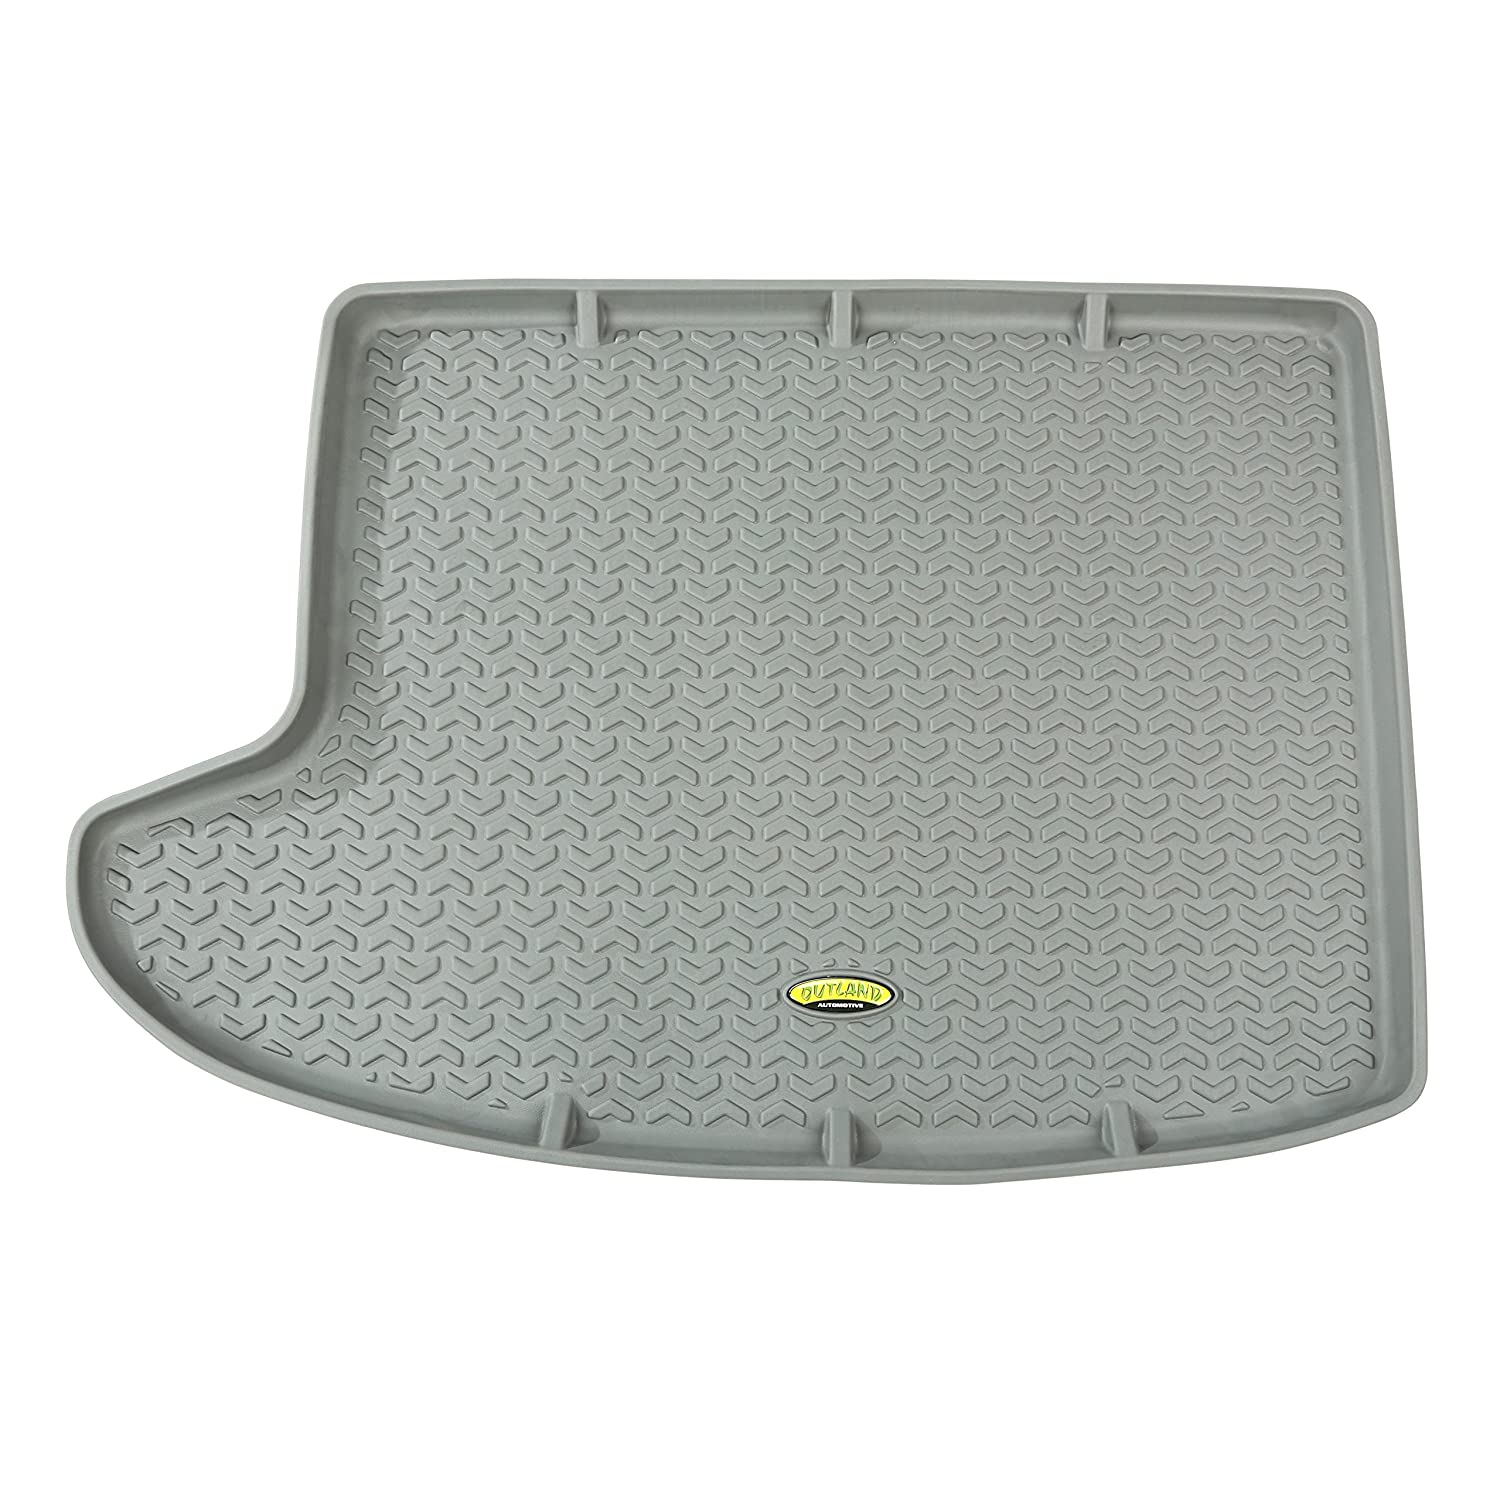 Outland 391298727 Black Front and Rear Floor Liner Kit For Select Jeep Compass and Patriot Models